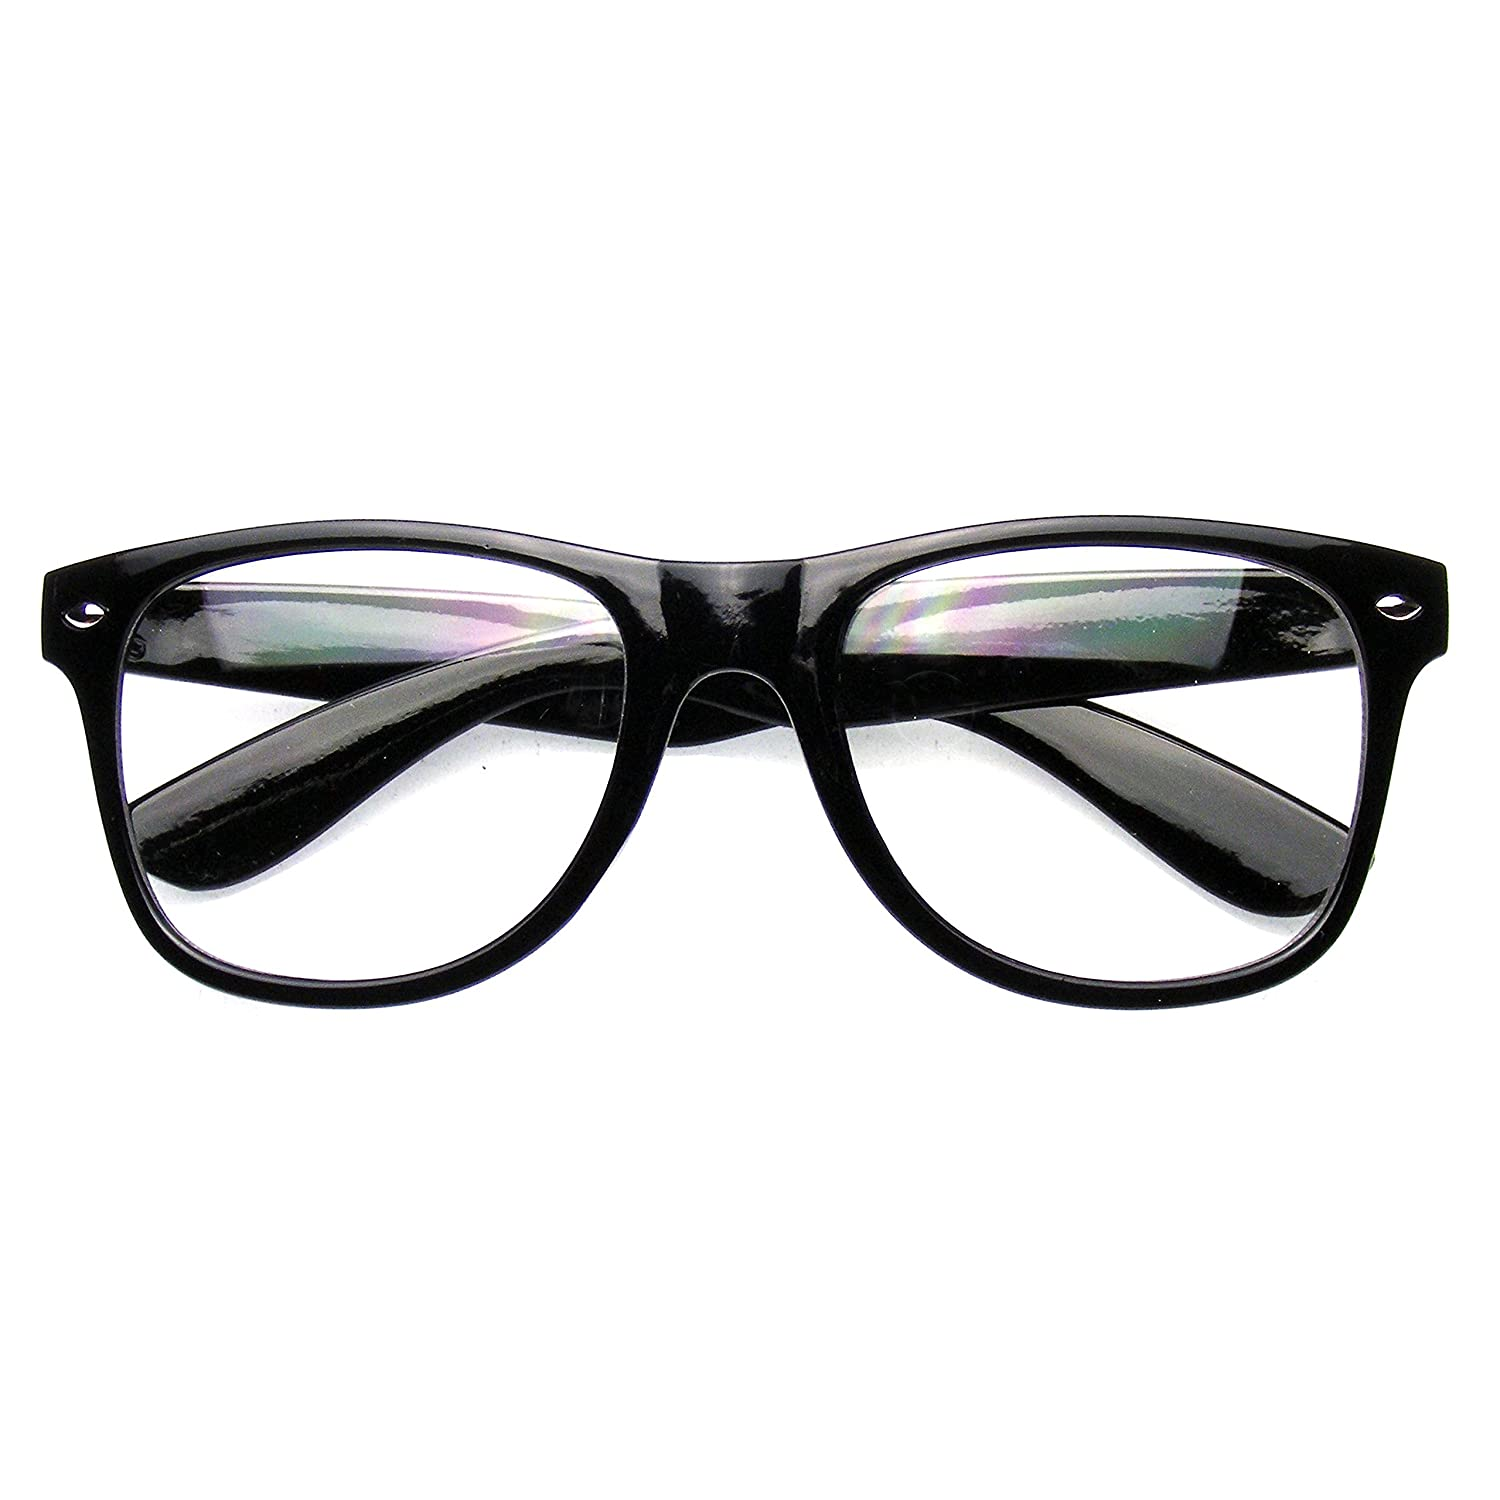 858d8e363f Width  57mm Bridge  13mm Height  44mm Total  146mm. HIGH QUALITY FRAME   Horn Rimmed Glasses are manufactured with high quality plastic frames and  ...